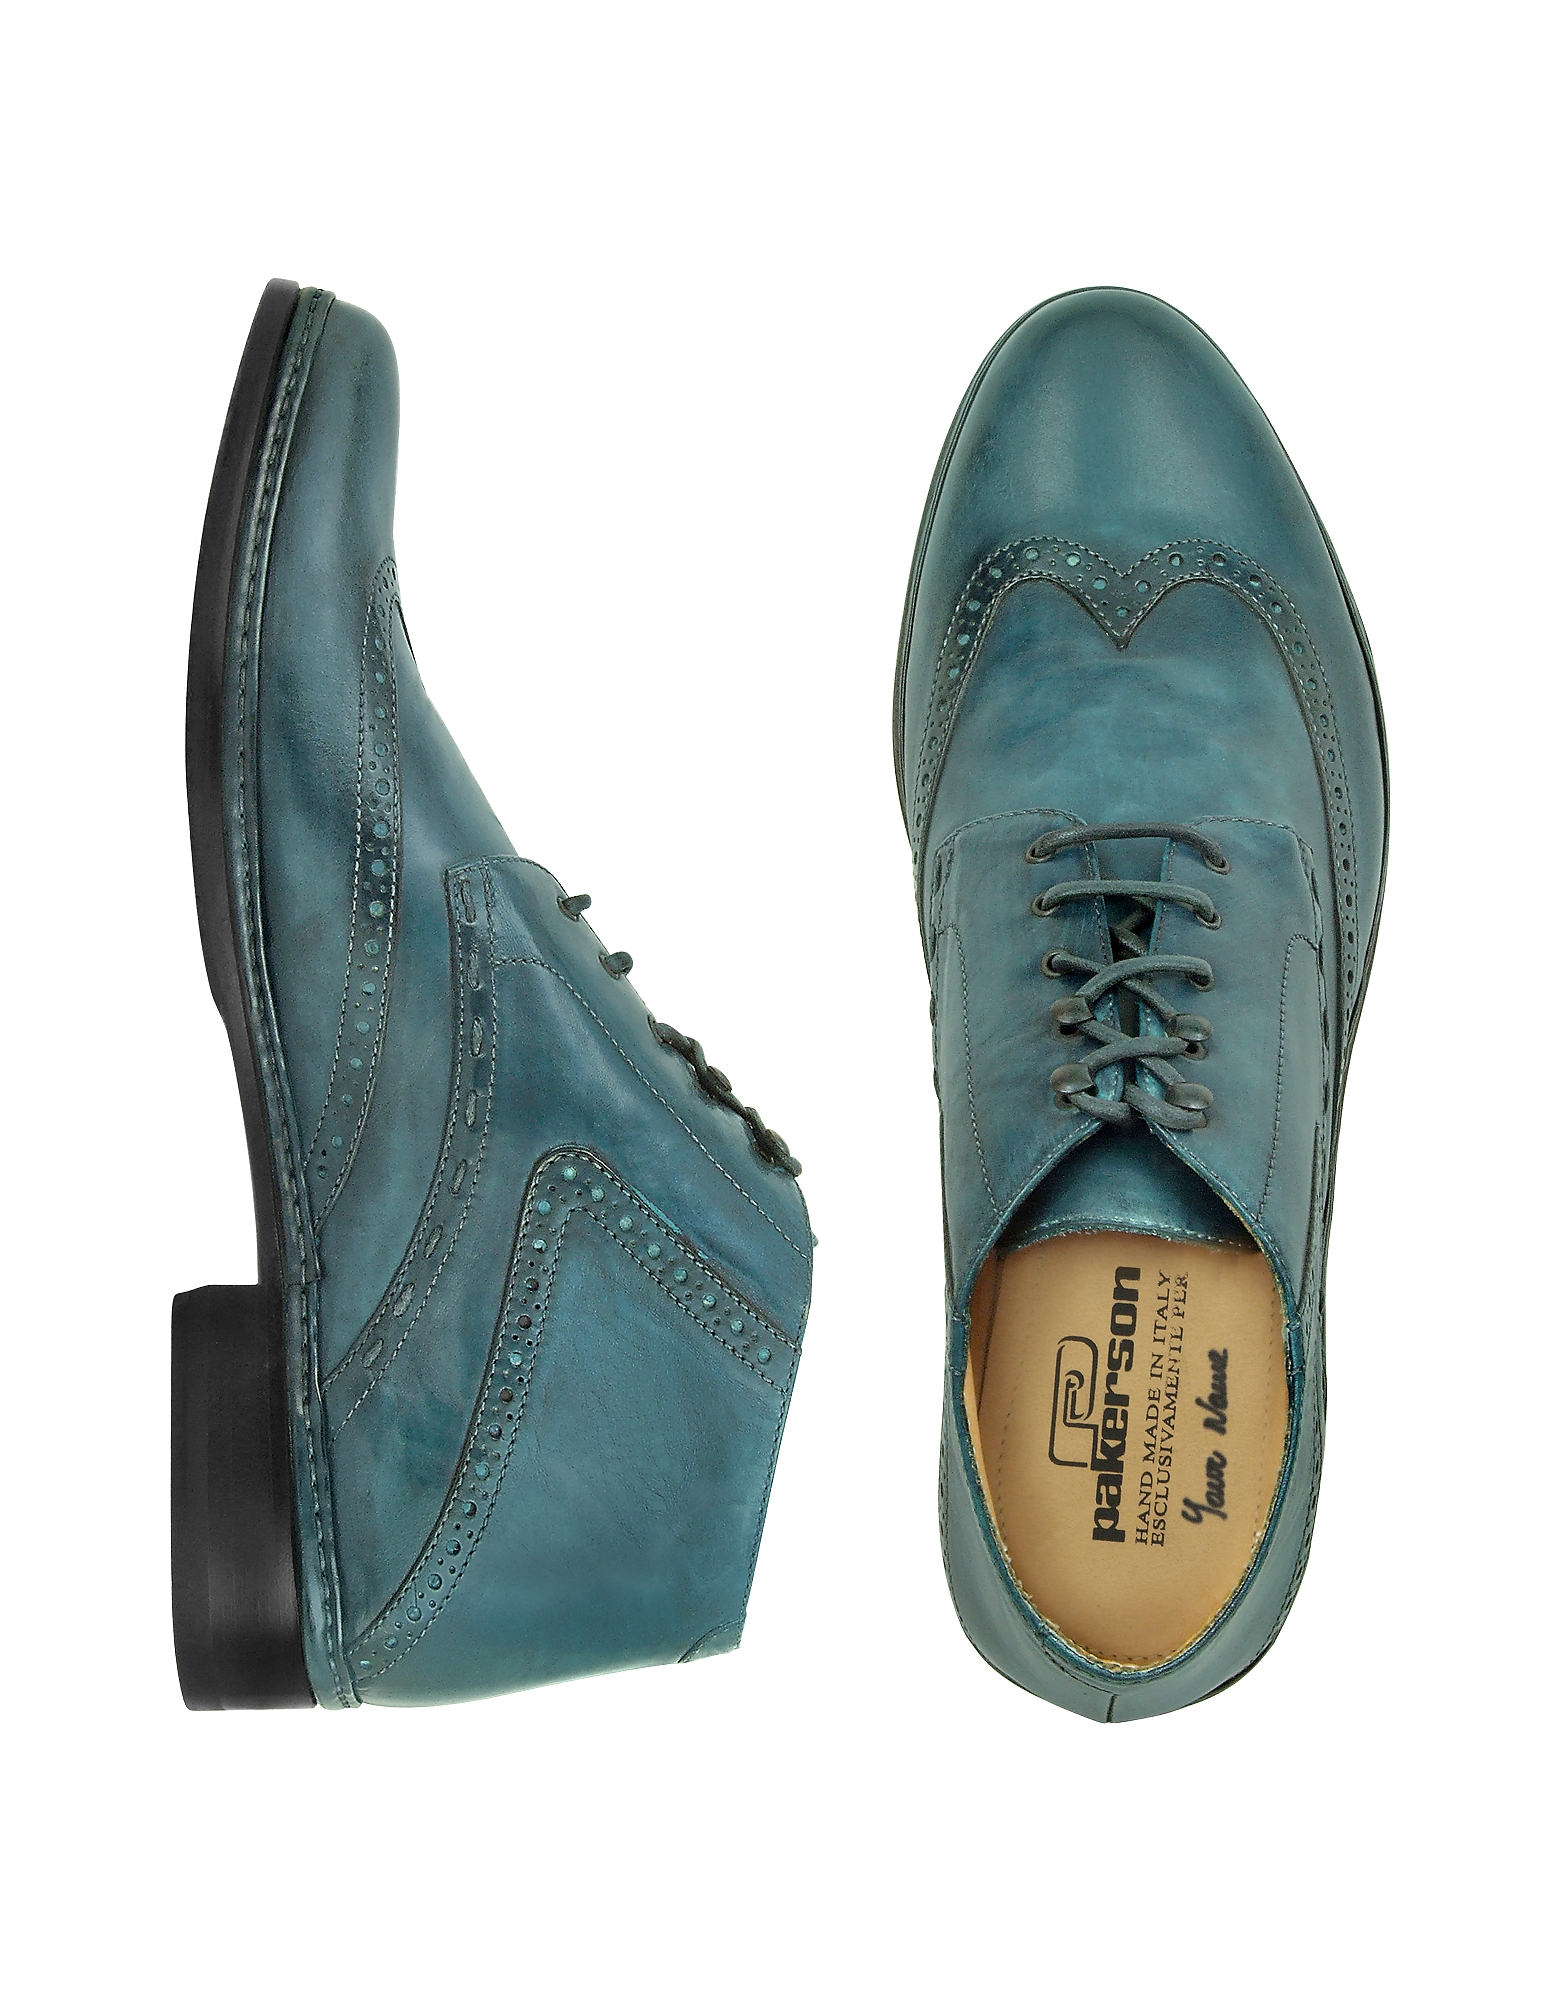 Pakerson Shoes, Petrol Blue Handmade Italian Leather Wingtip Ankle Boots